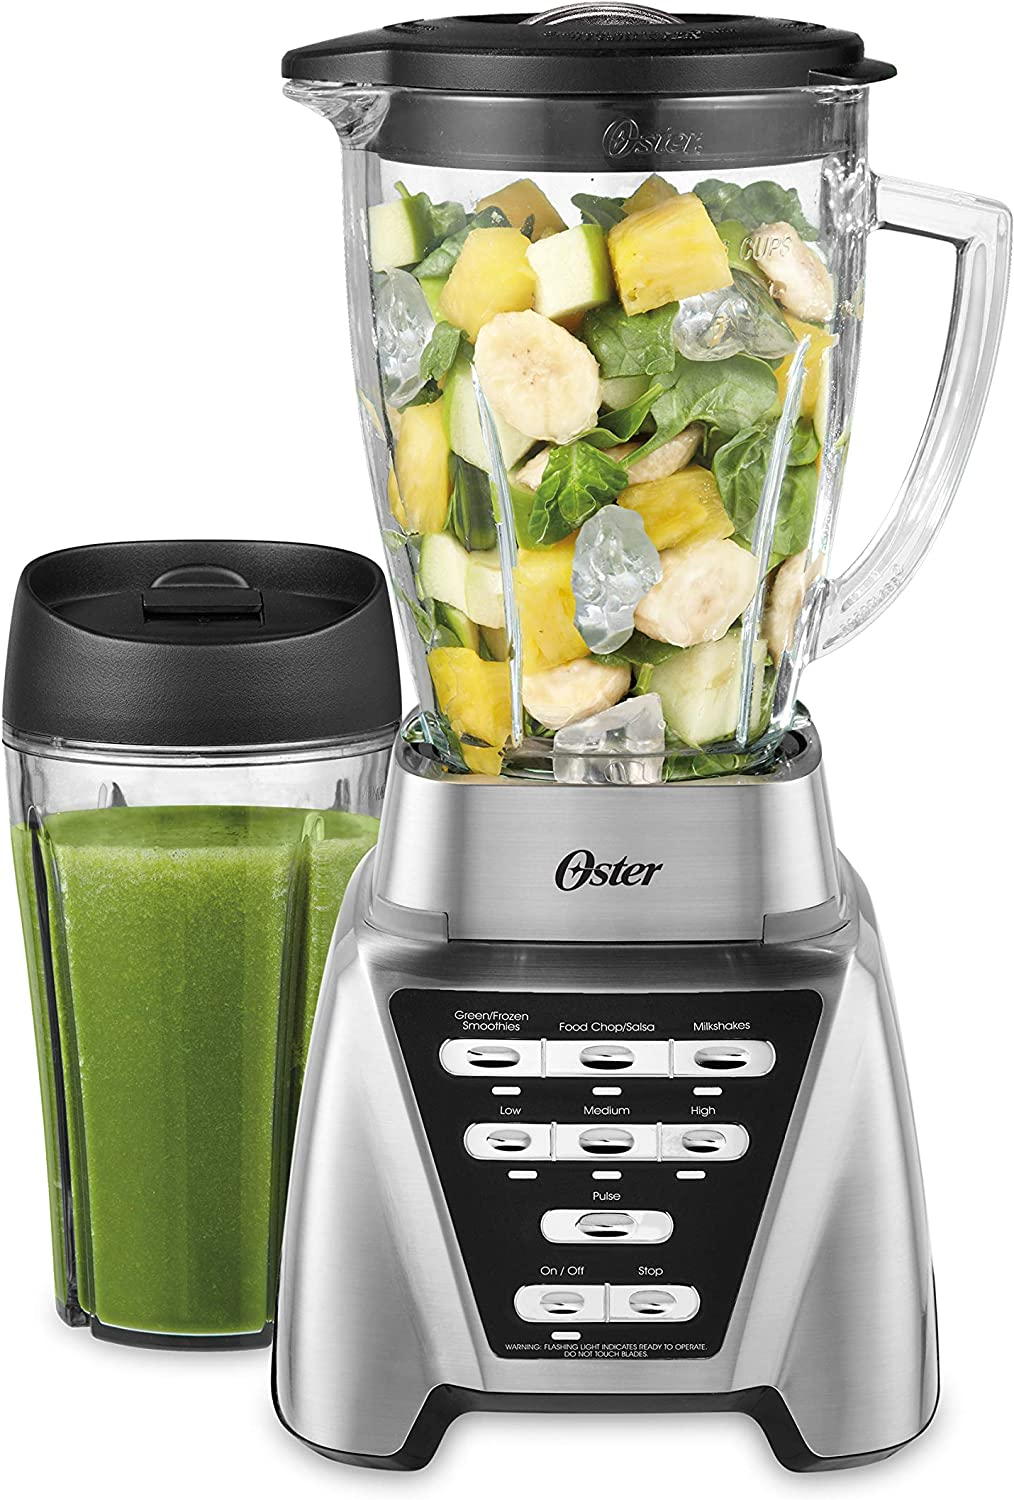 Best blender with glass jar - Oster Blender Pro 1200